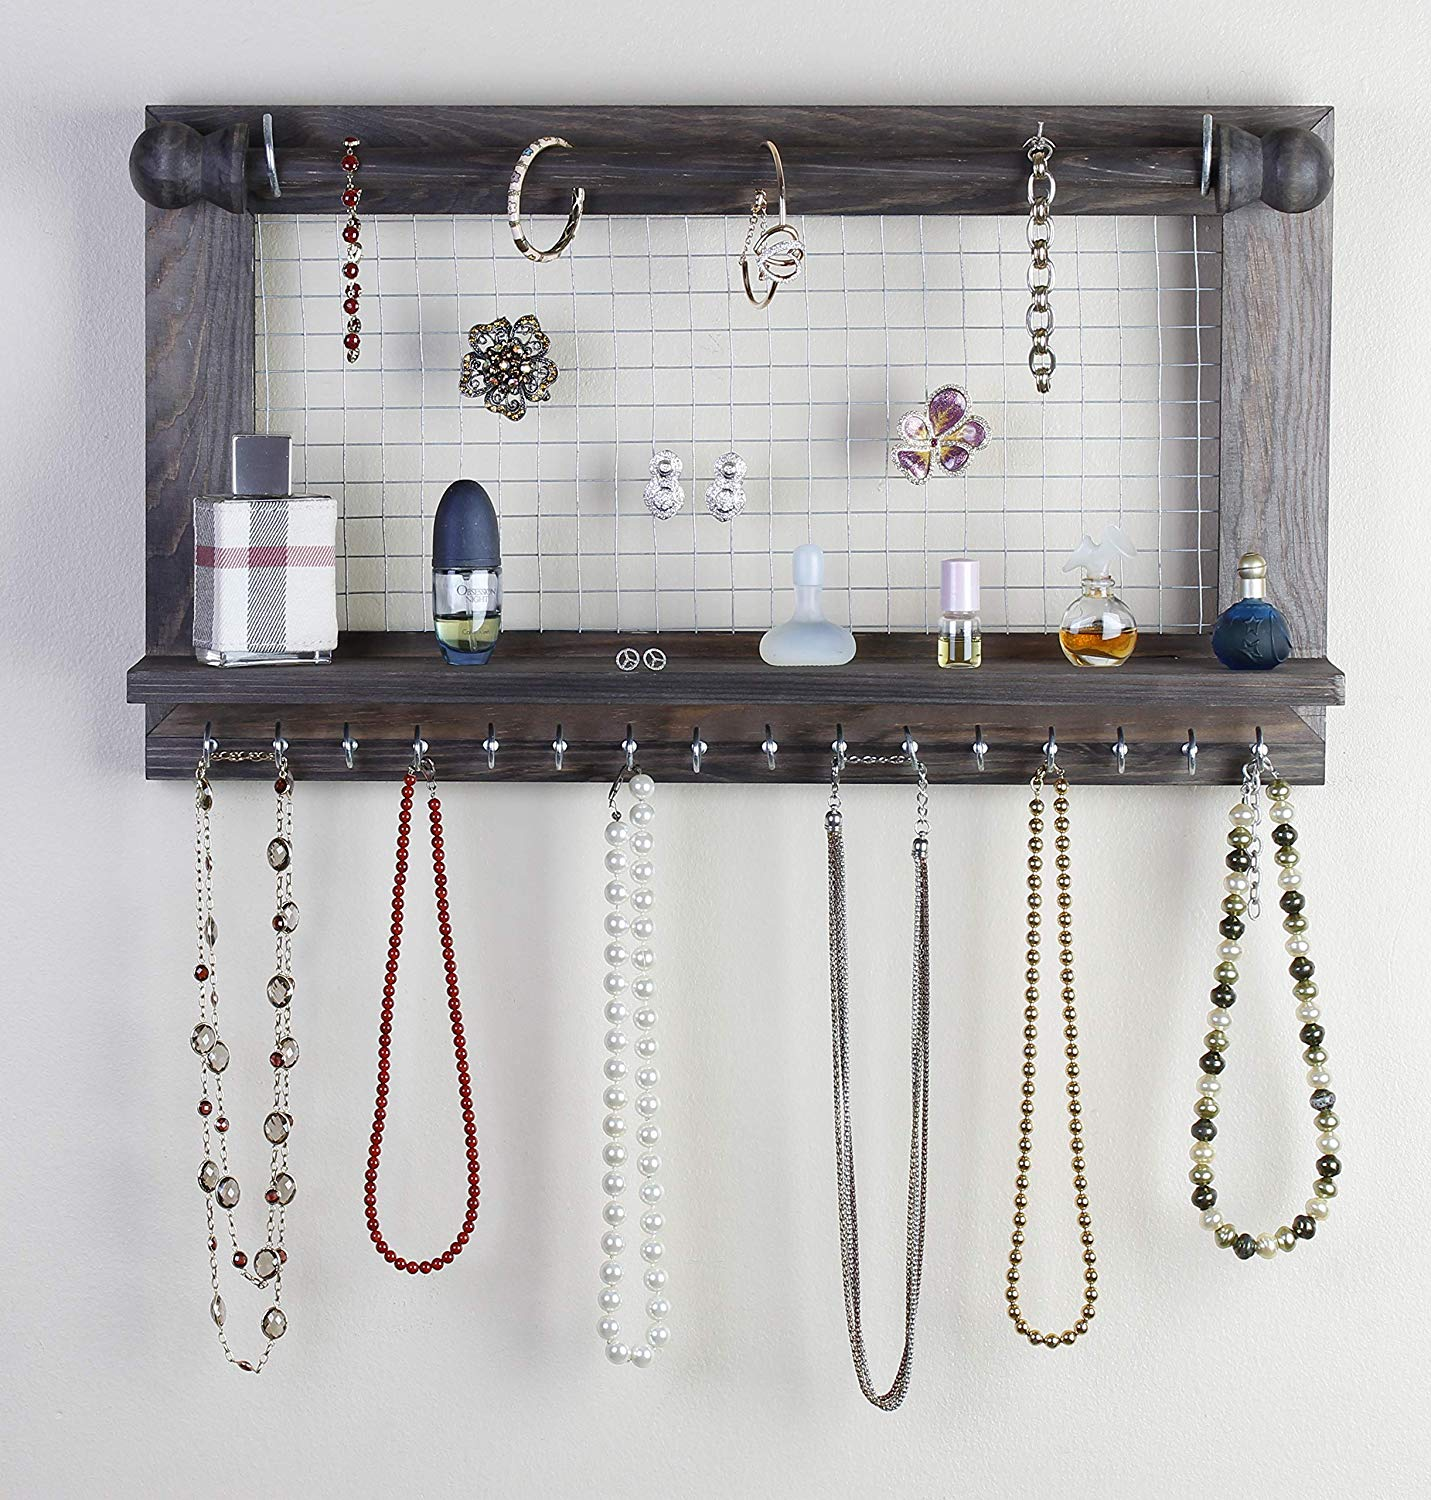 "Hanging Jewelry Organizer | Wall Mounted Wooden Holder for Necklace, Earrings, Bracelets, Rings & Other Accessories | With Hooks, Shelf, Wire Grid & Removable Bar | 17.5"" x 10"" Size 